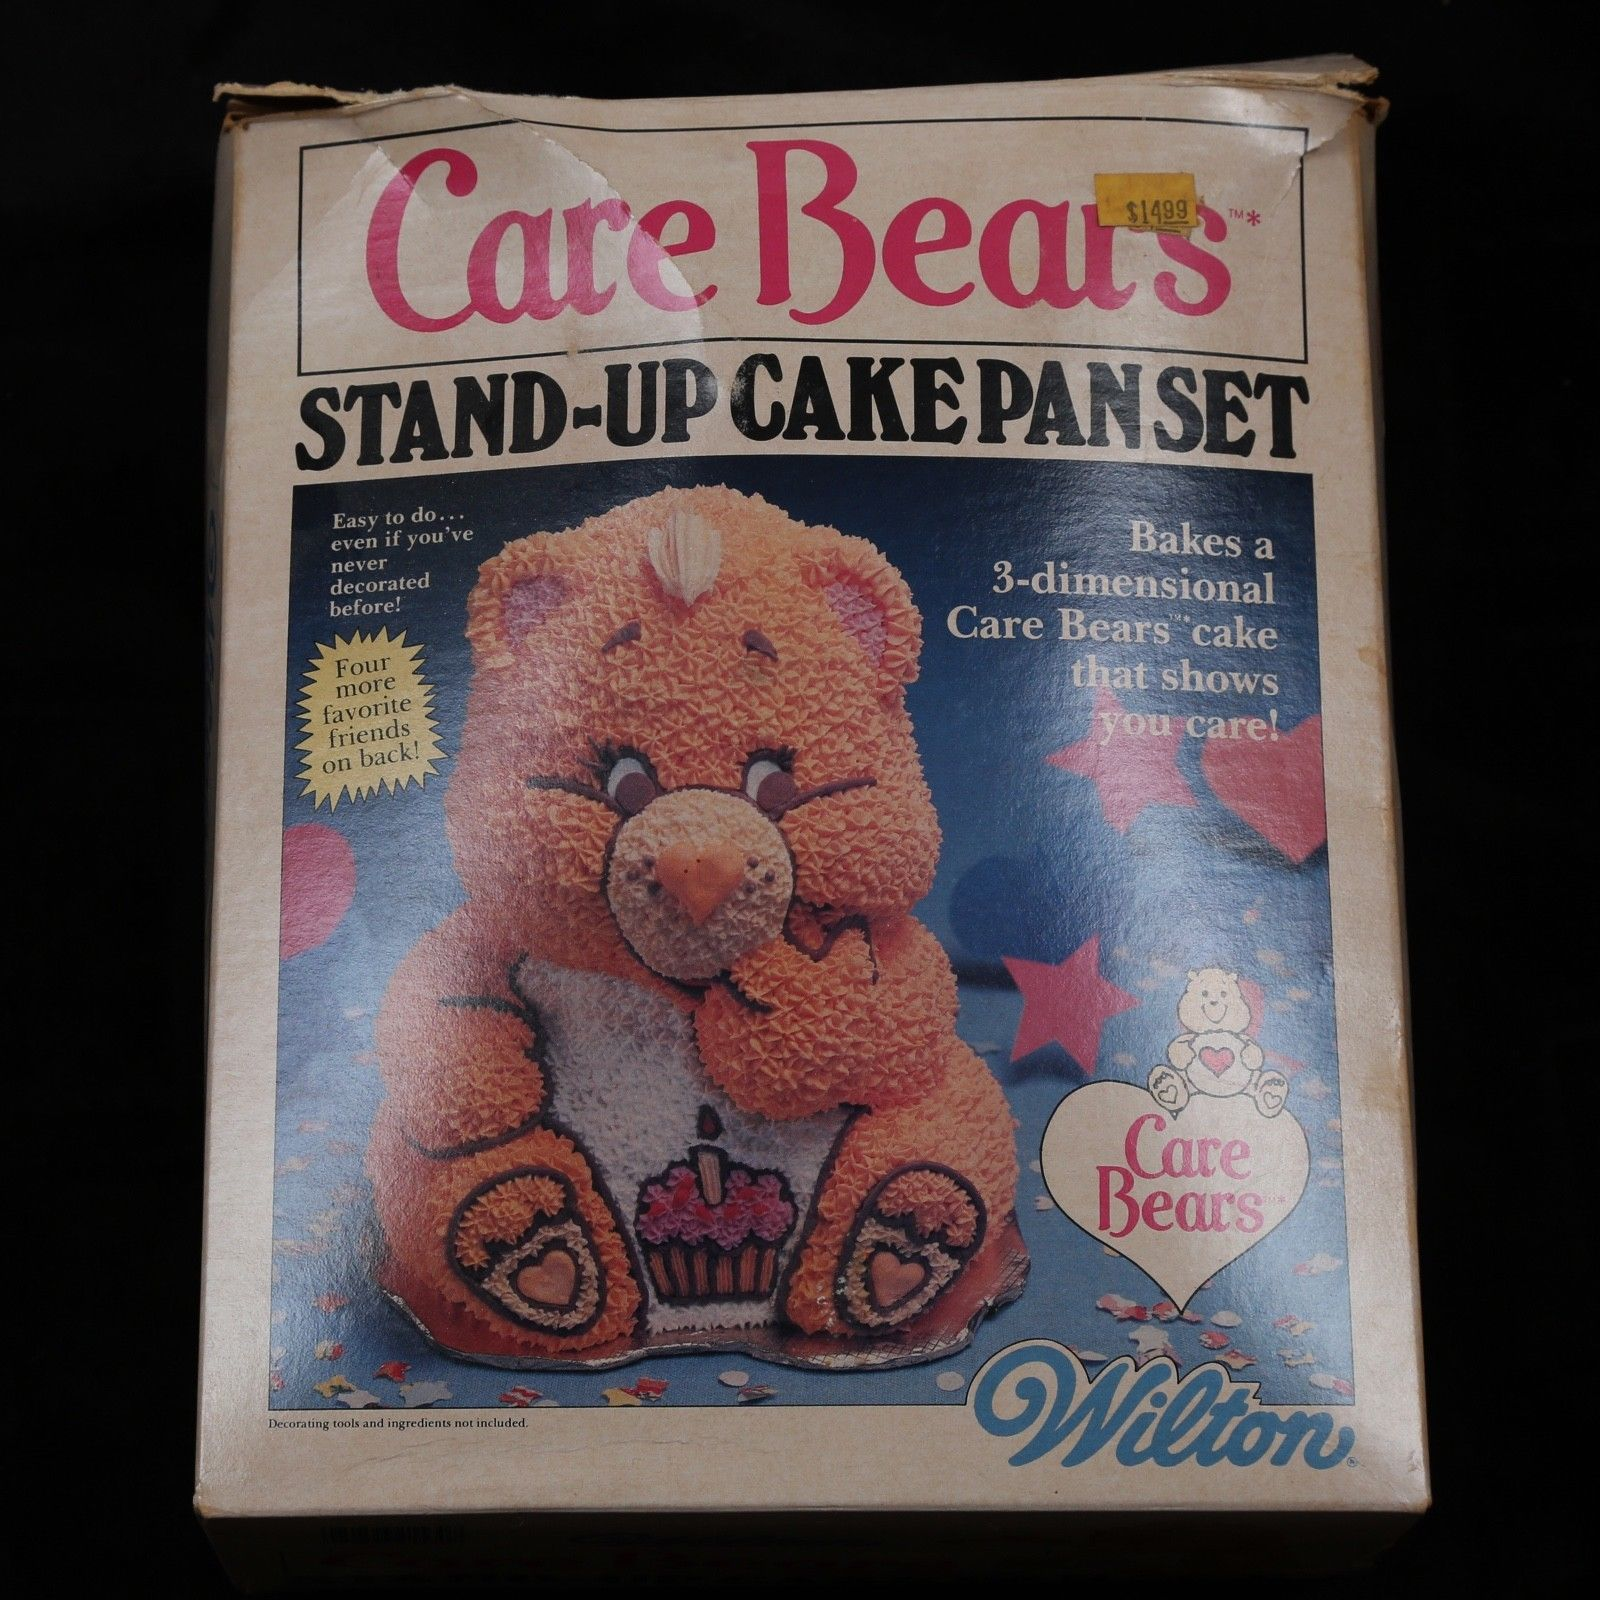 Box for a Care Bear stand-up cake pan set